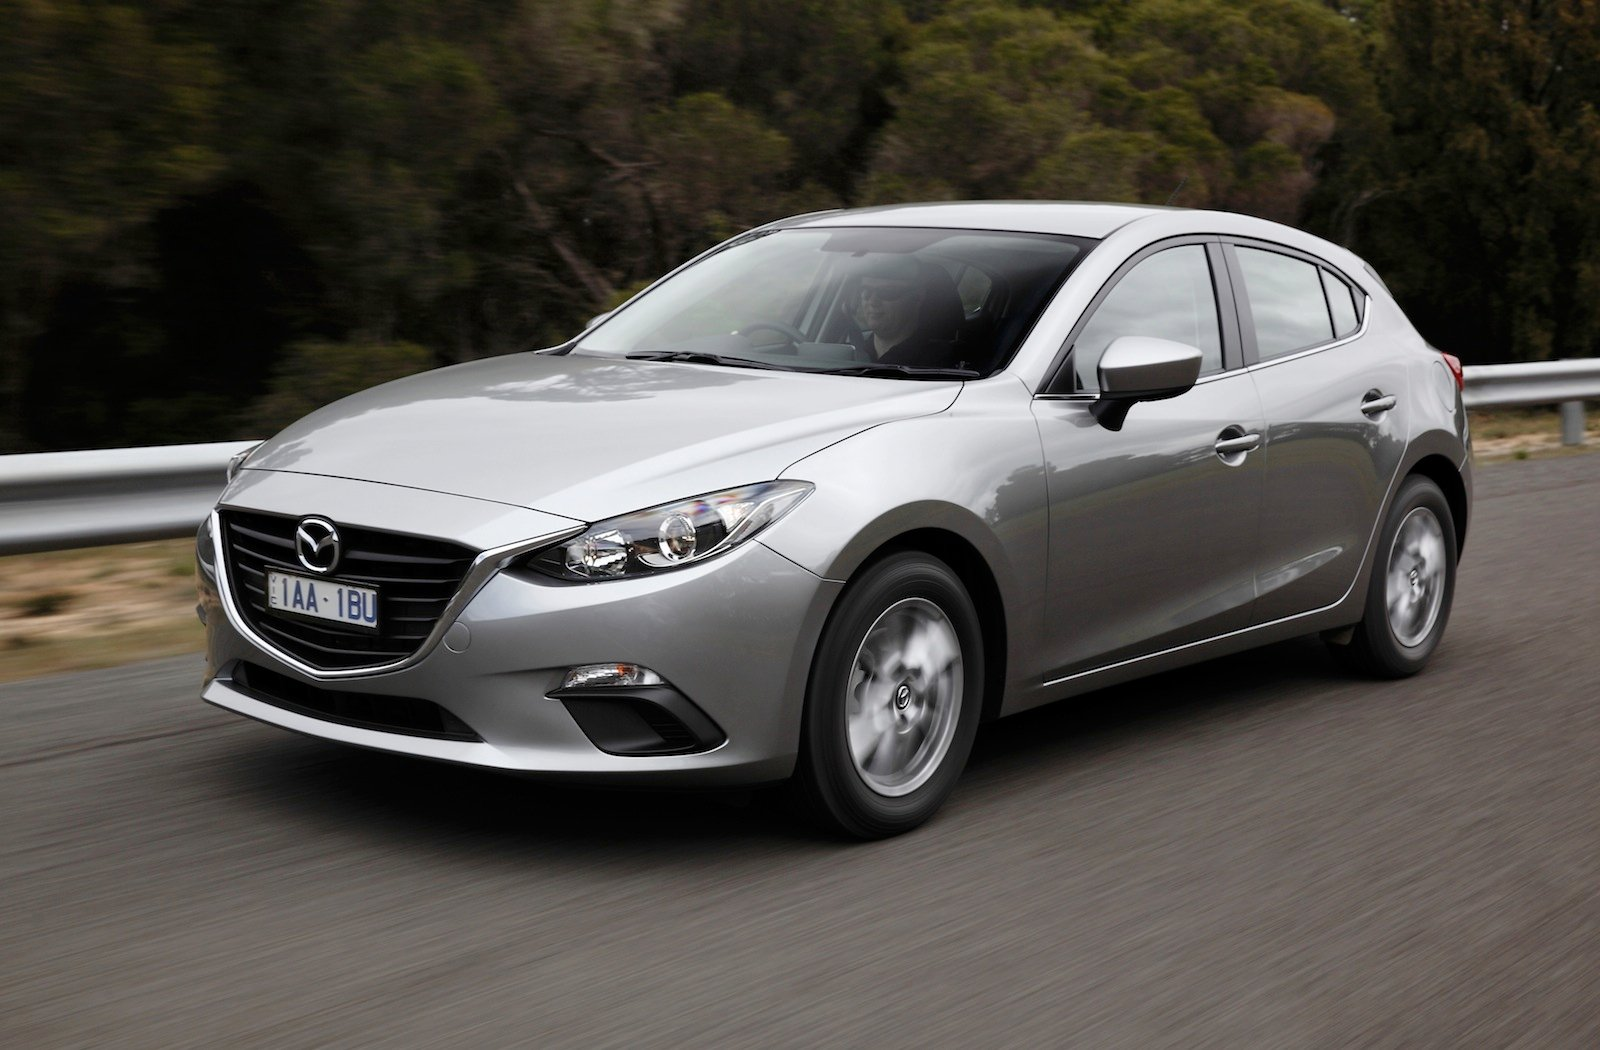 2014 Mazda 3 V Old Mazda 3 Comparison Review Photos